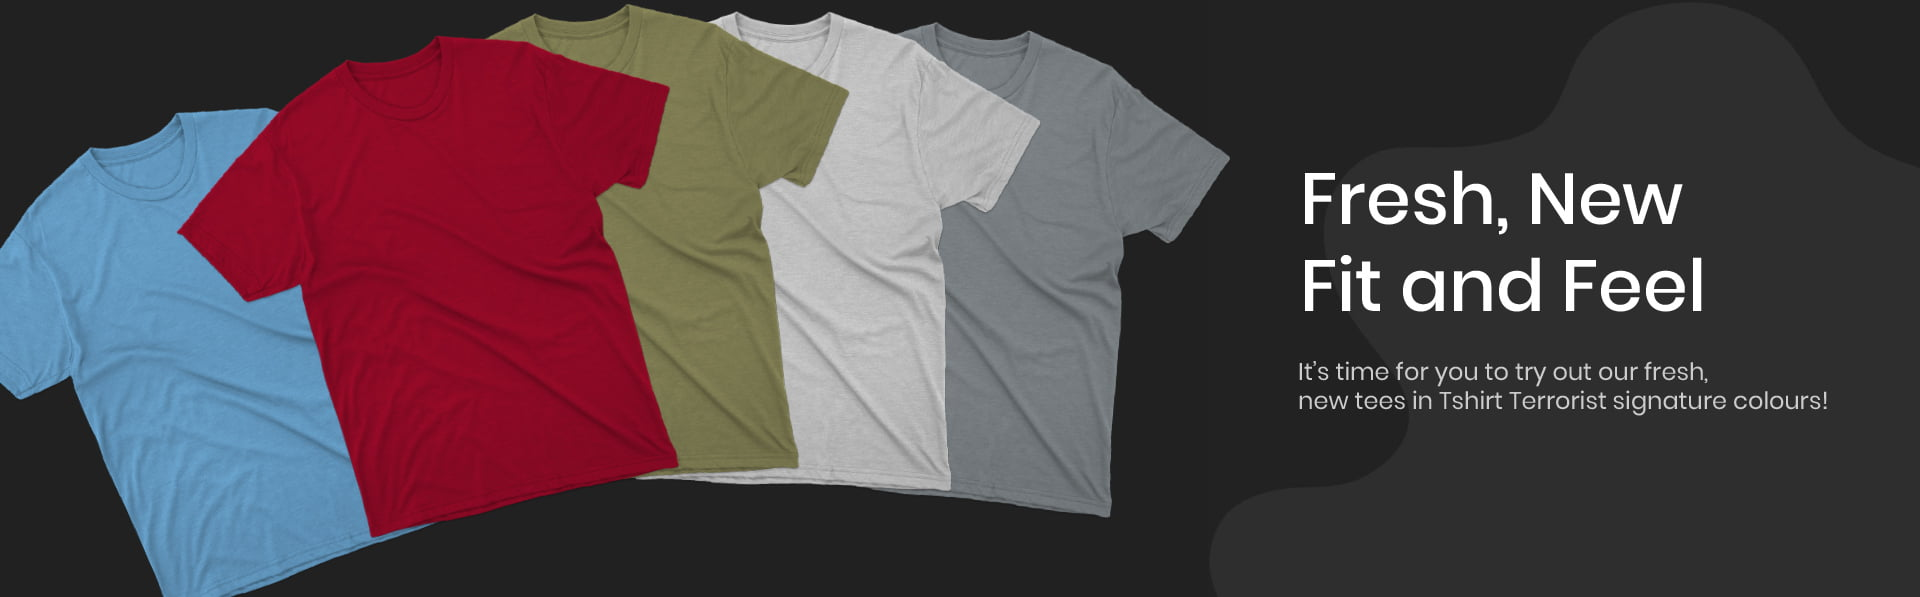 Fresh New Fit And Feel T-shirt banner